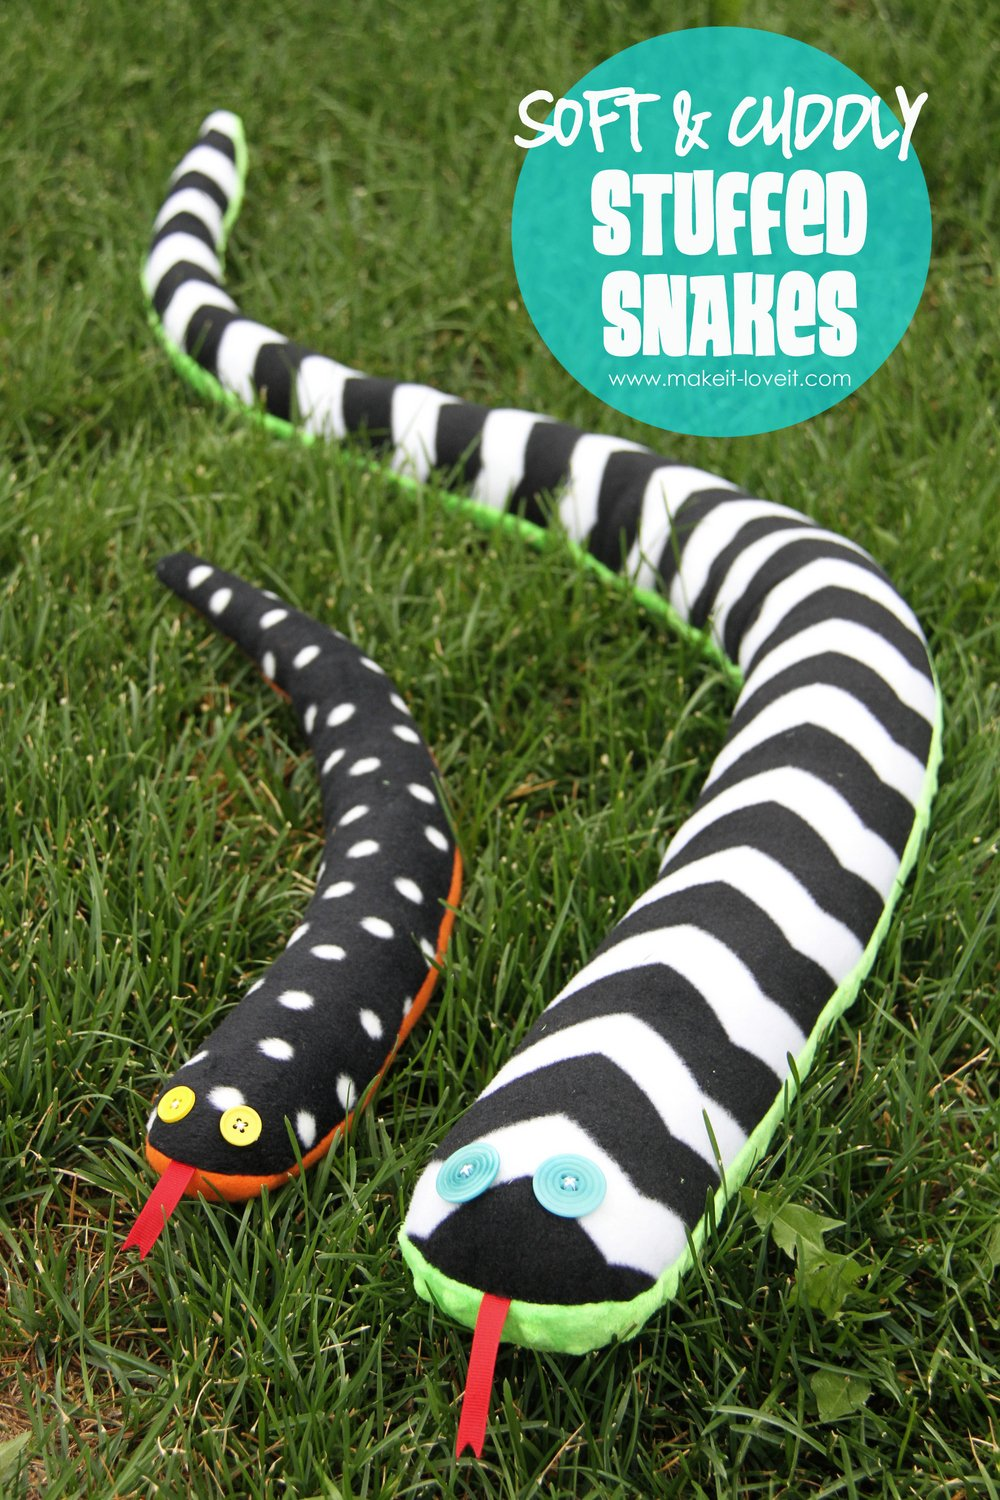 Stuffed Toy Snakes Soft And Cuddly Make It And